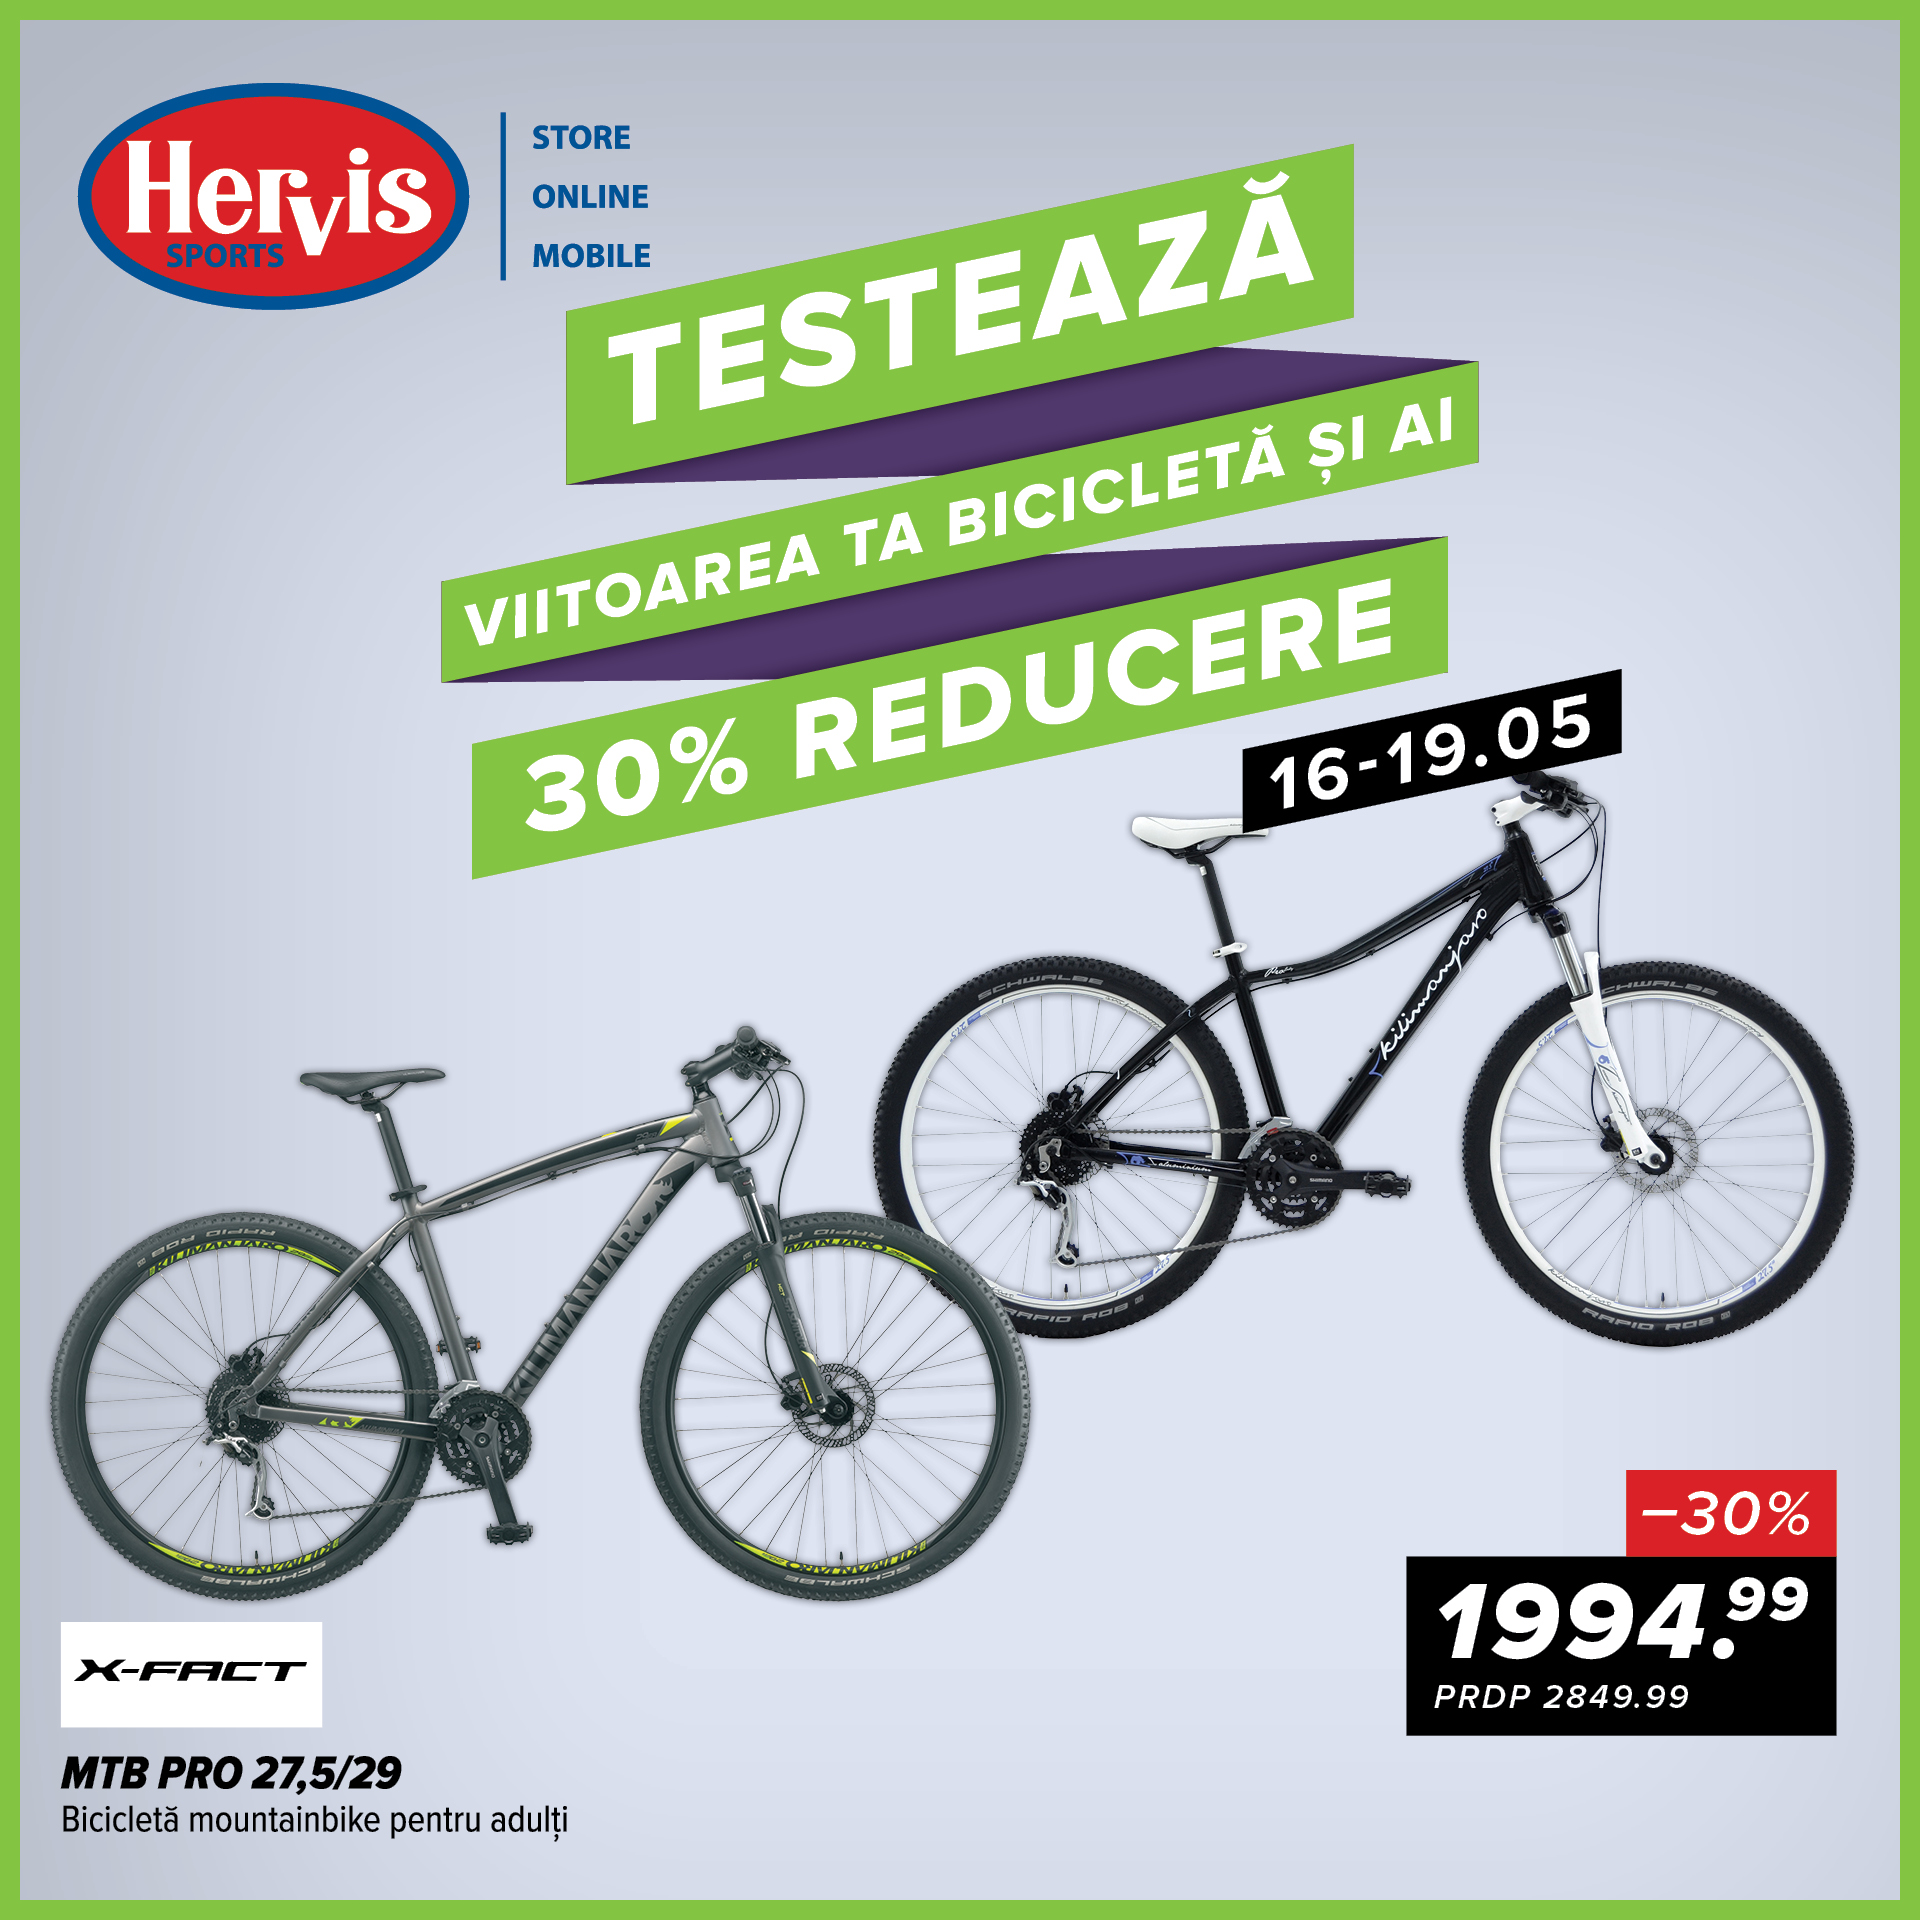 hervis reducere biciclete